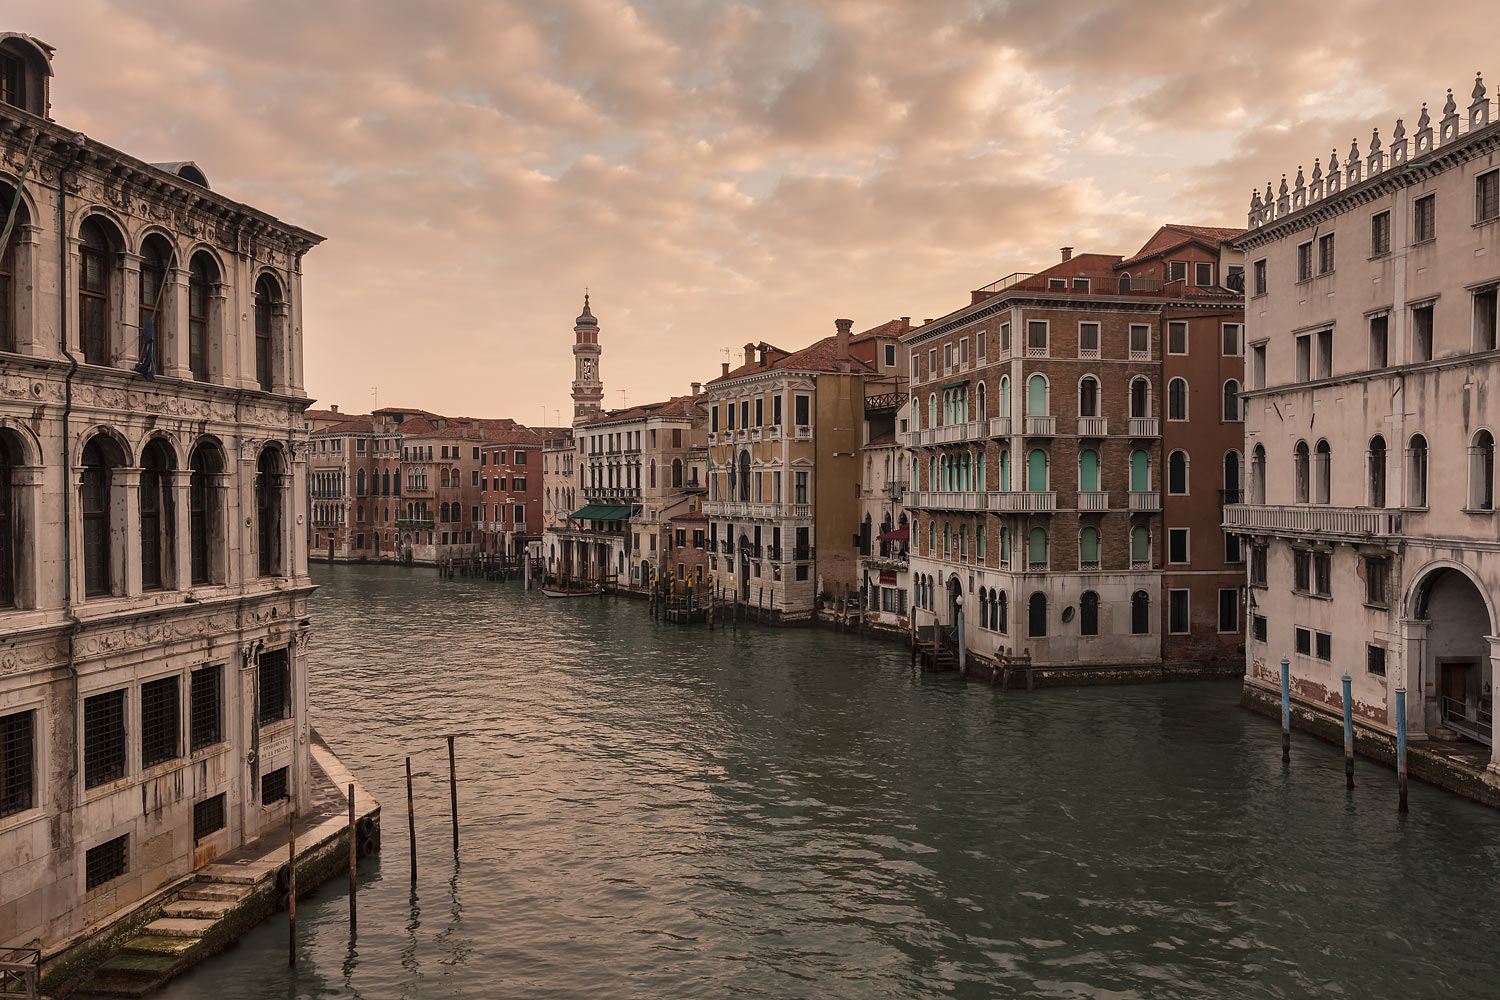 Venice, Italy - The Grand Canal at Dawn